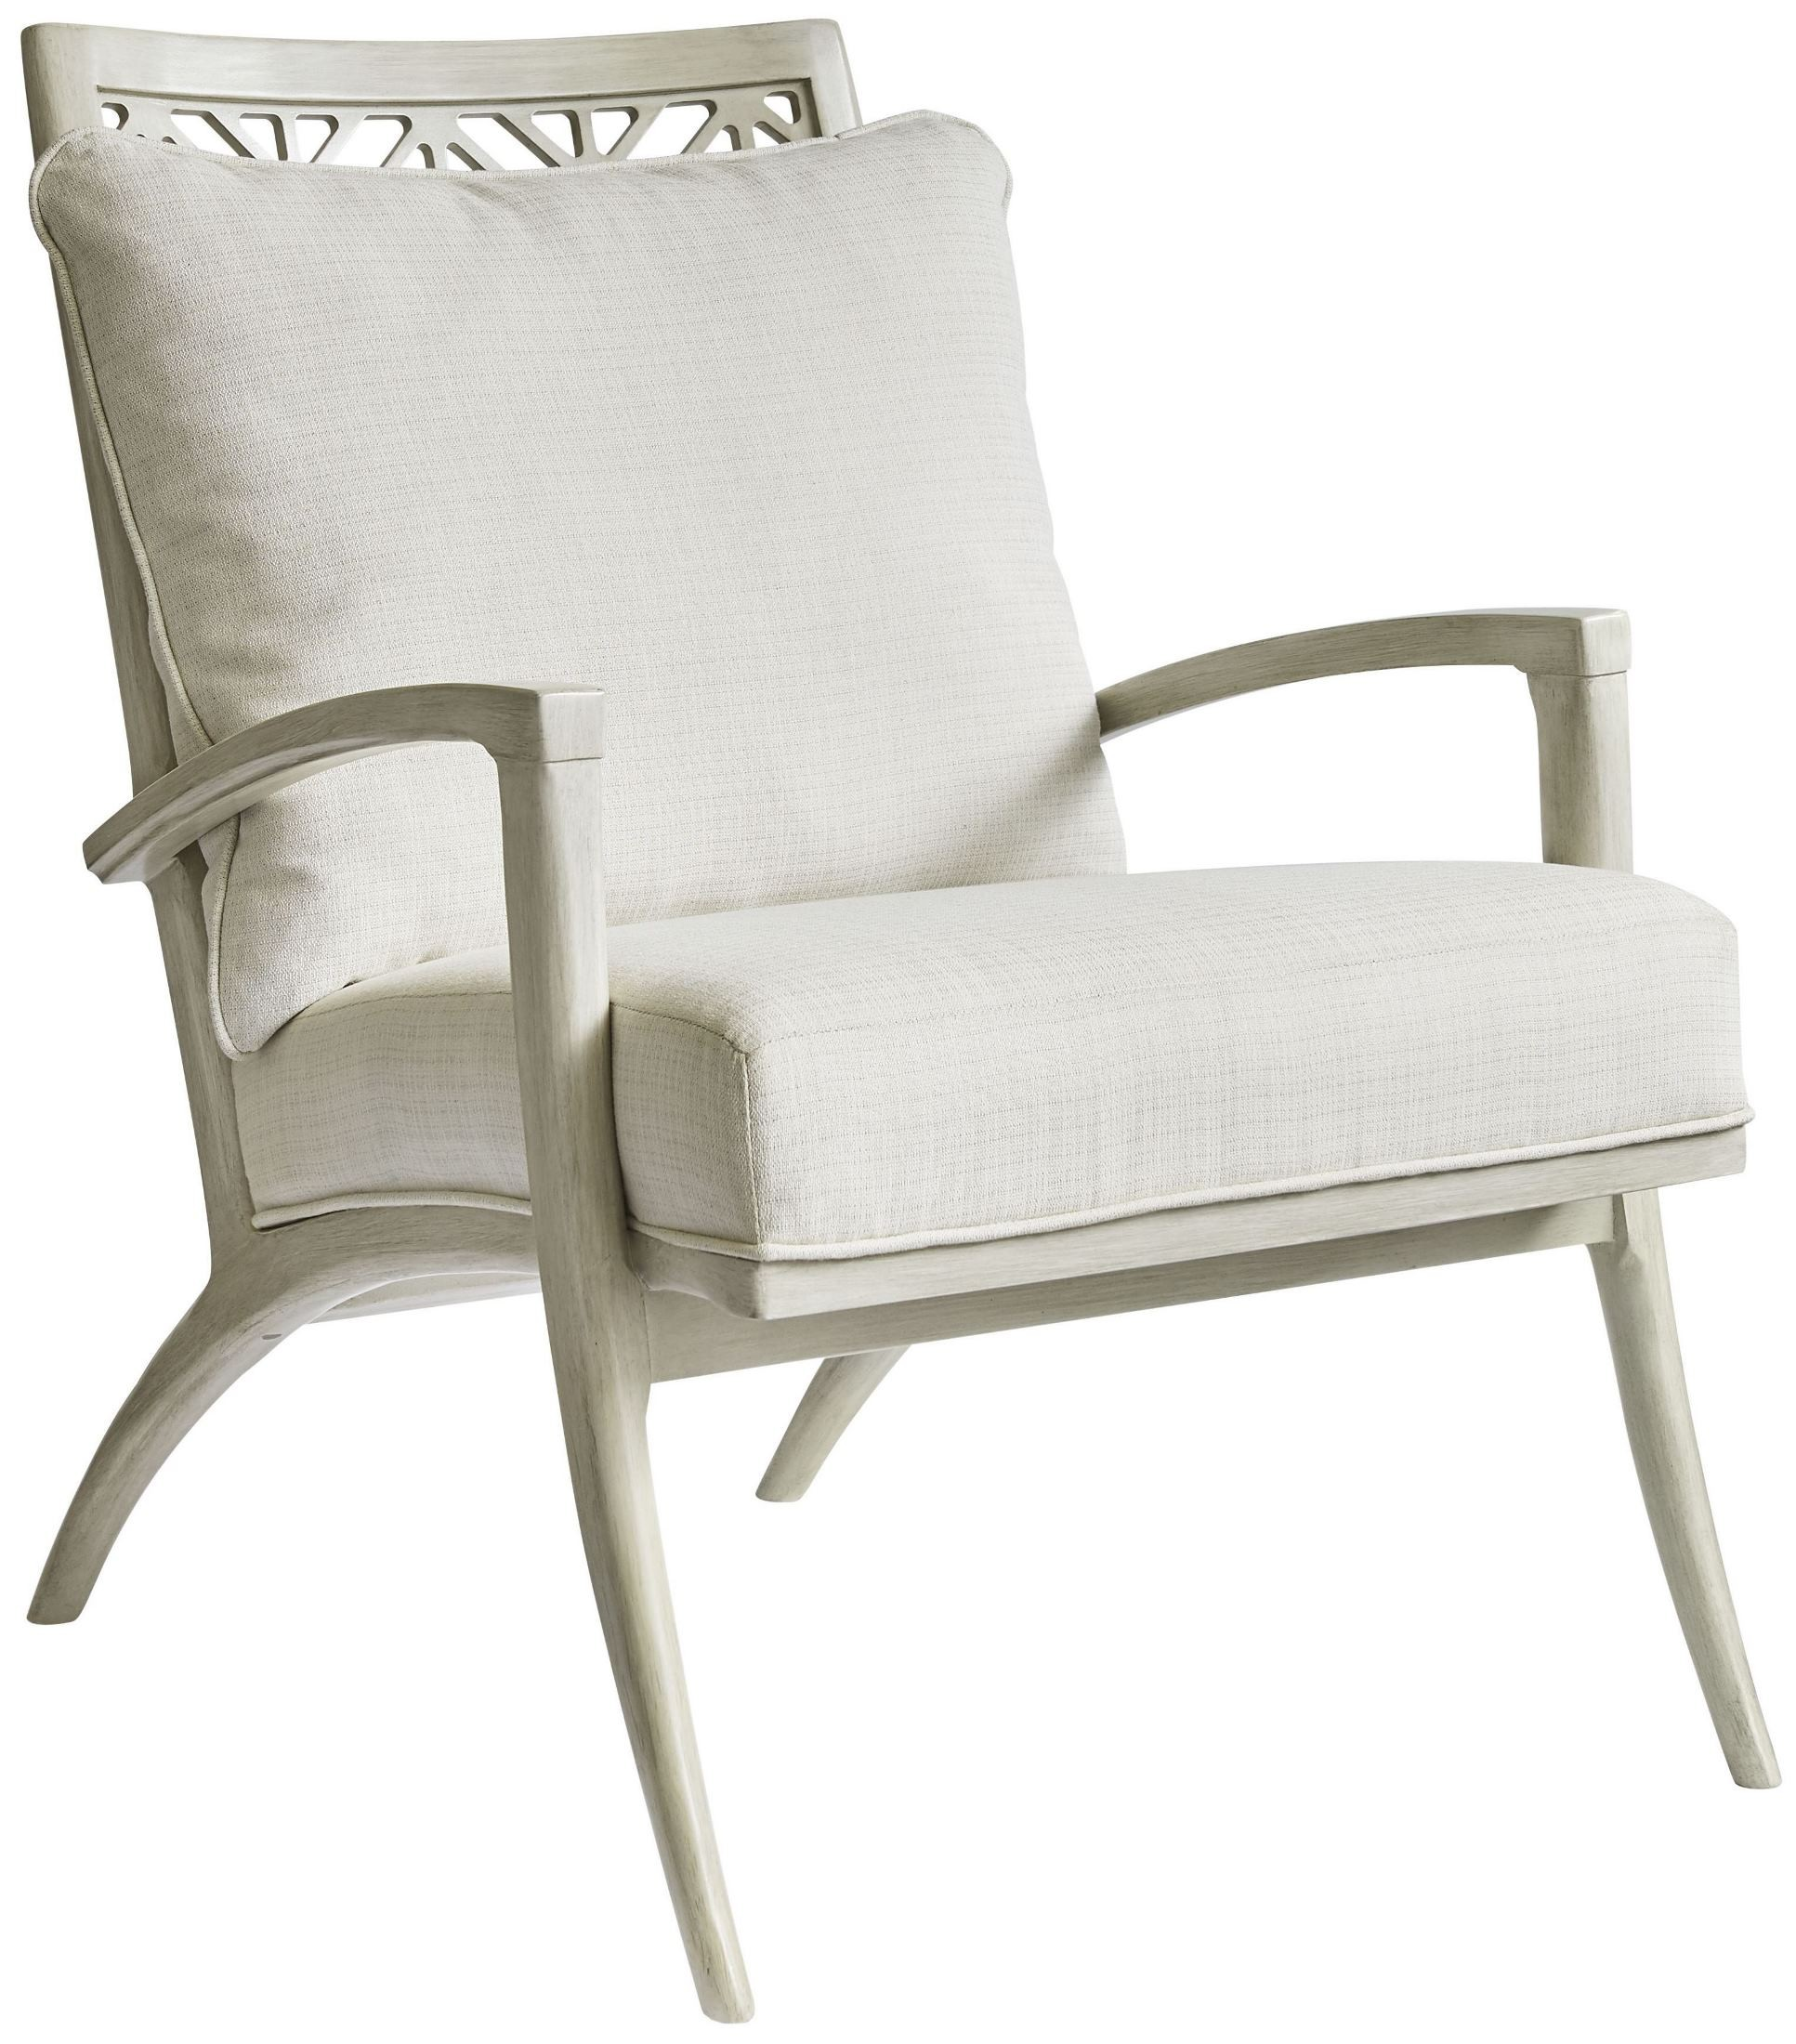 Stanley Nautical Accent Chair: Coastal Living Oasis Oyster Catalina Accent Chair, 527-55